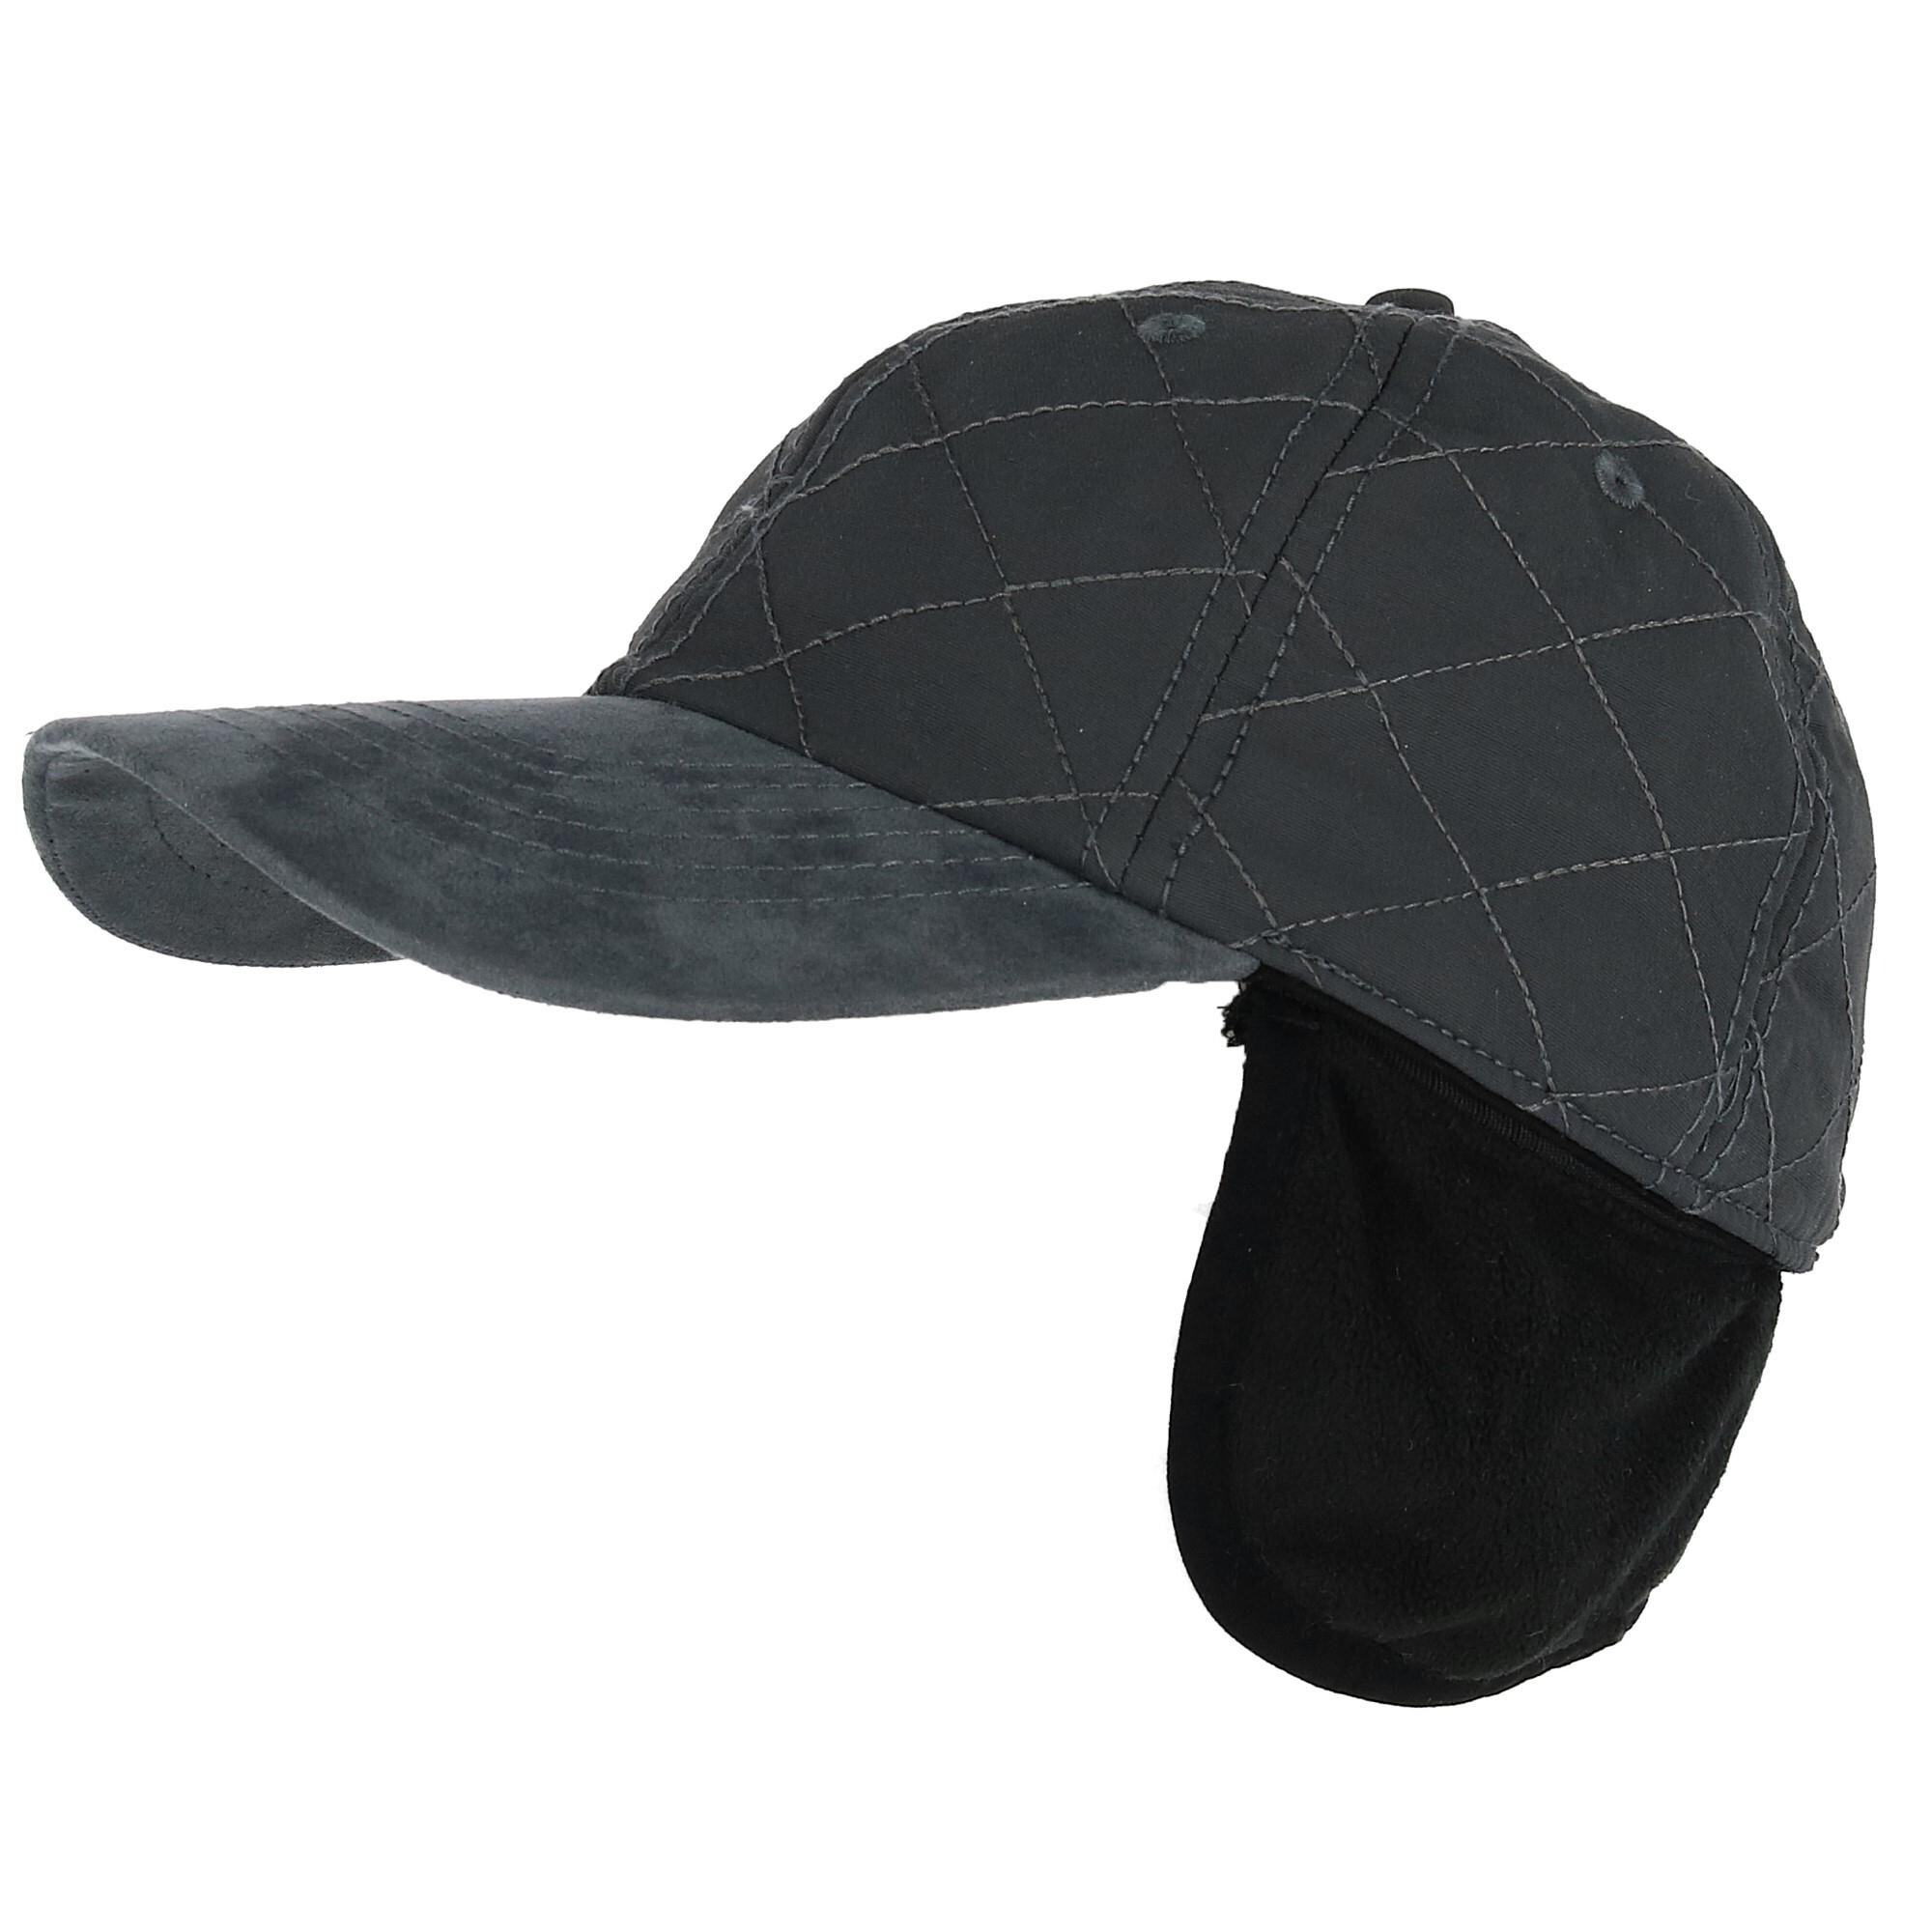 Shop Elysiumland Men s Quilted Baseball Cap with Ear Flaps - Free ... 6bdfd560921